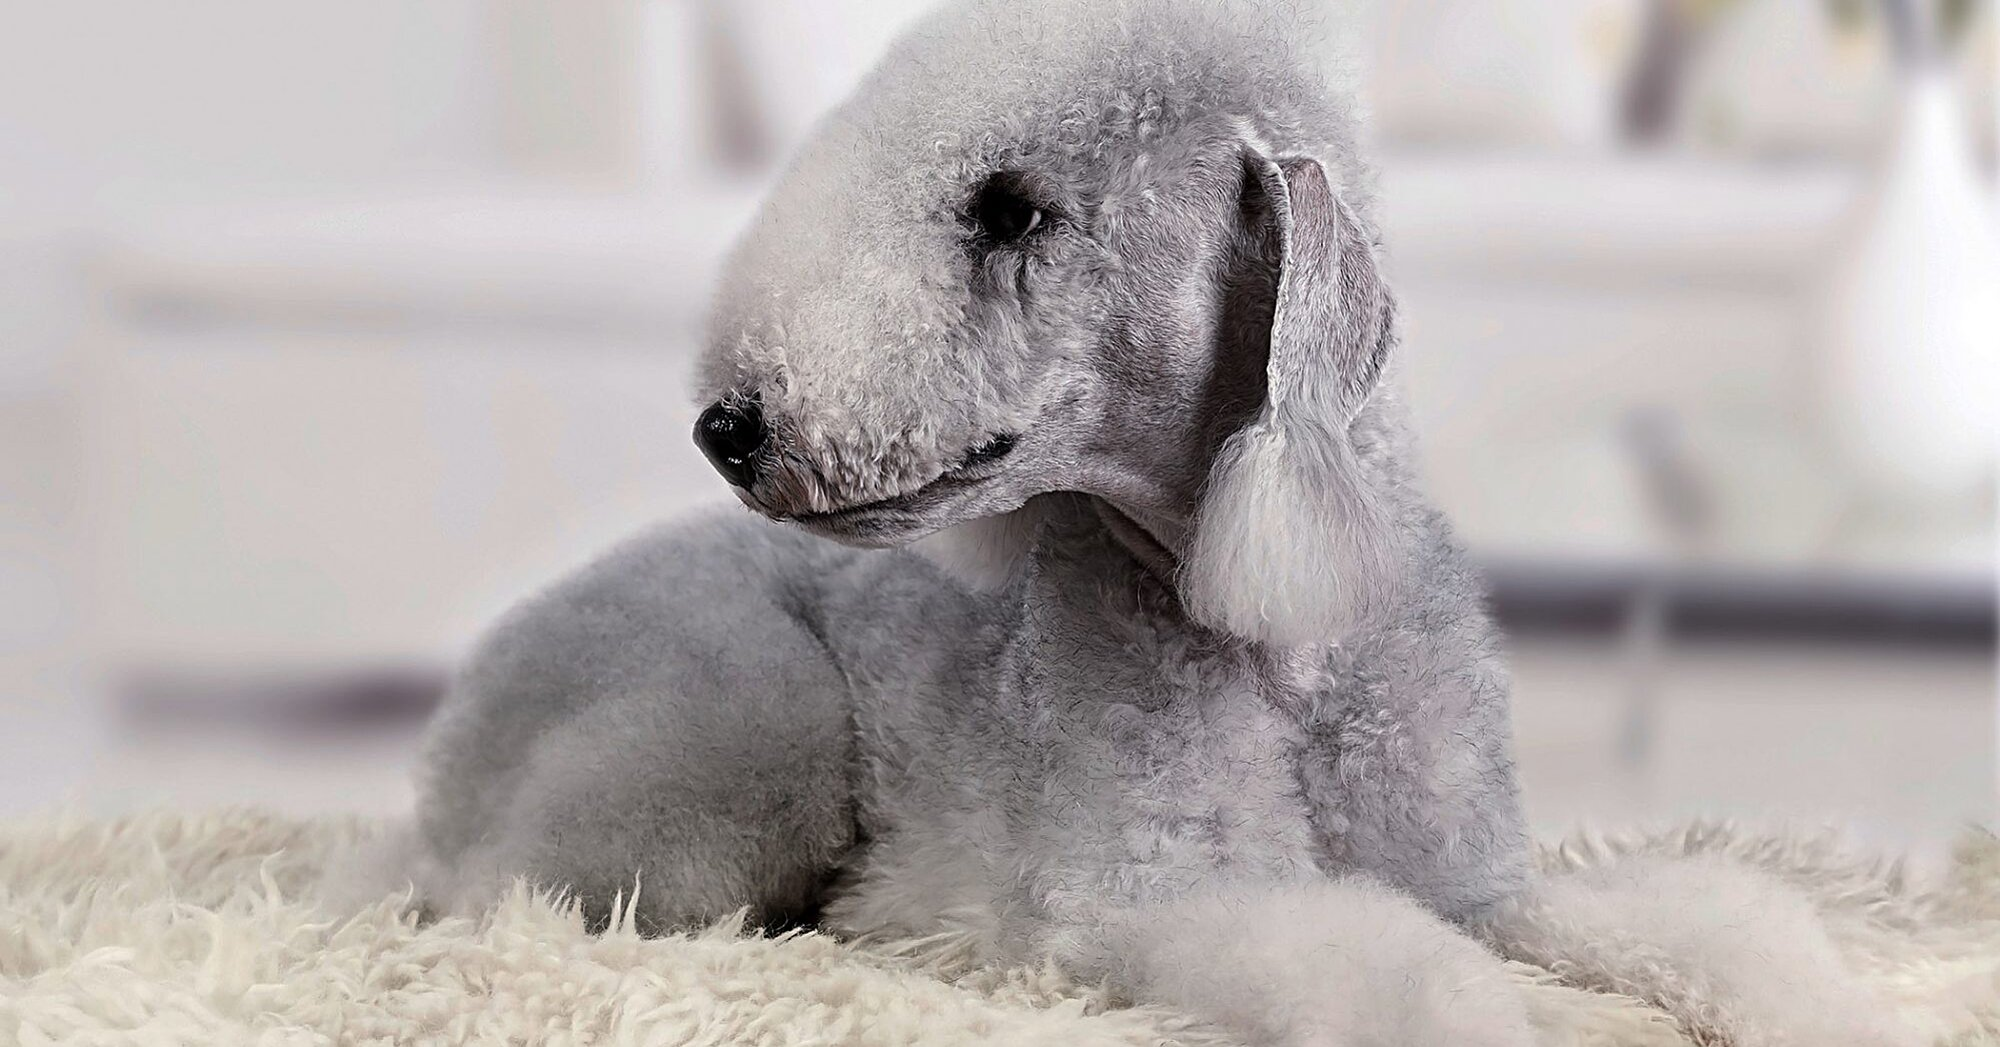 20 Dog Breeds That Don't Shed (Much)